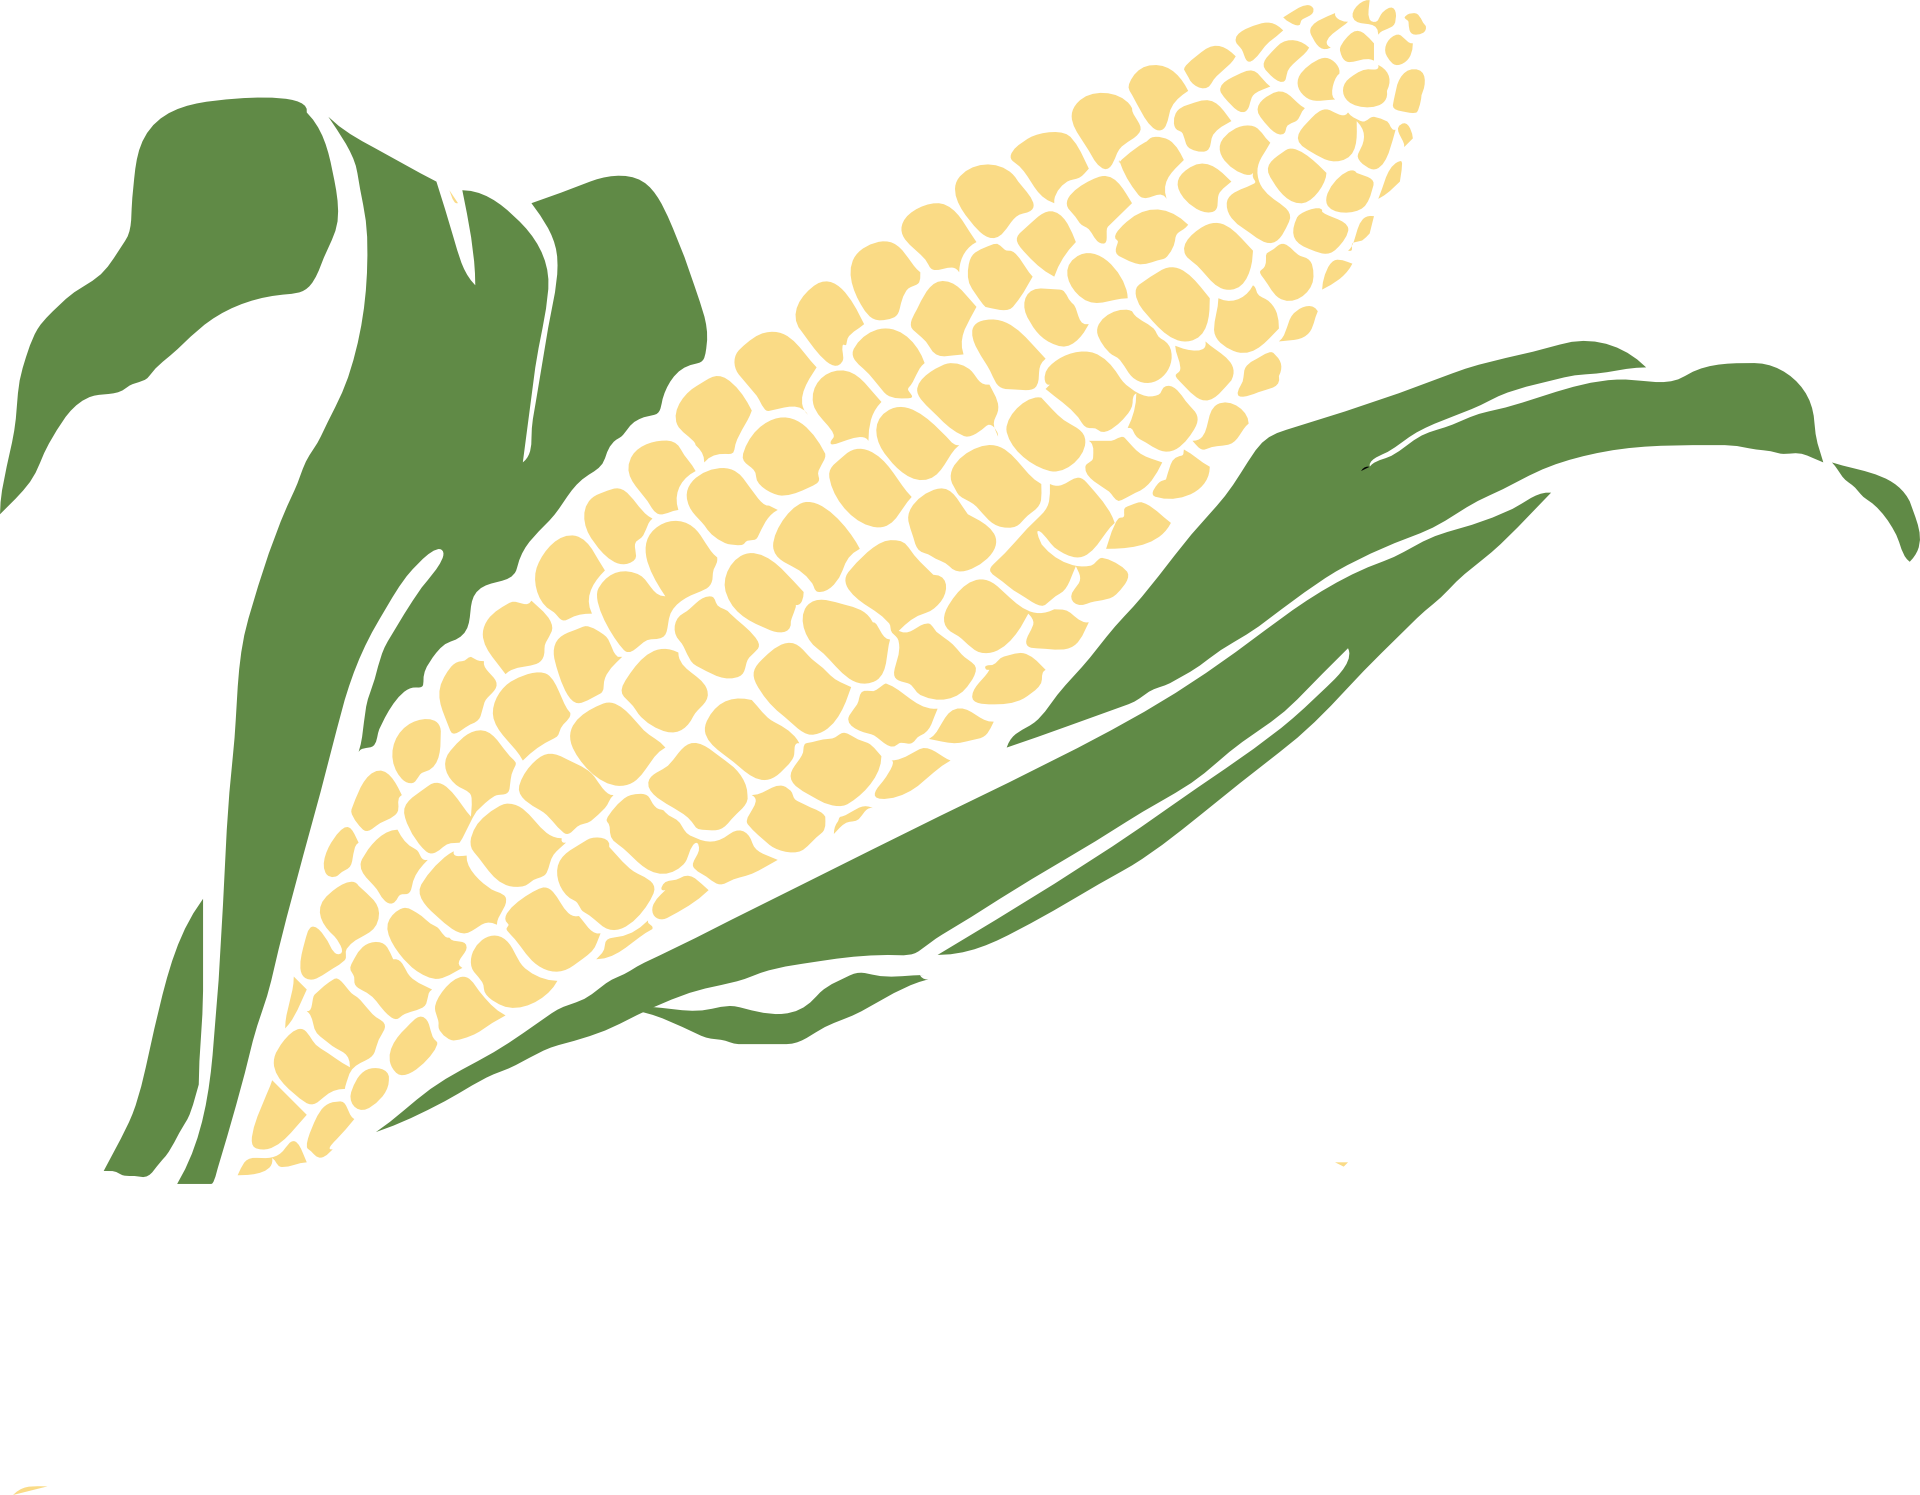 Of corn vegetable crop. Crops clipart drawing